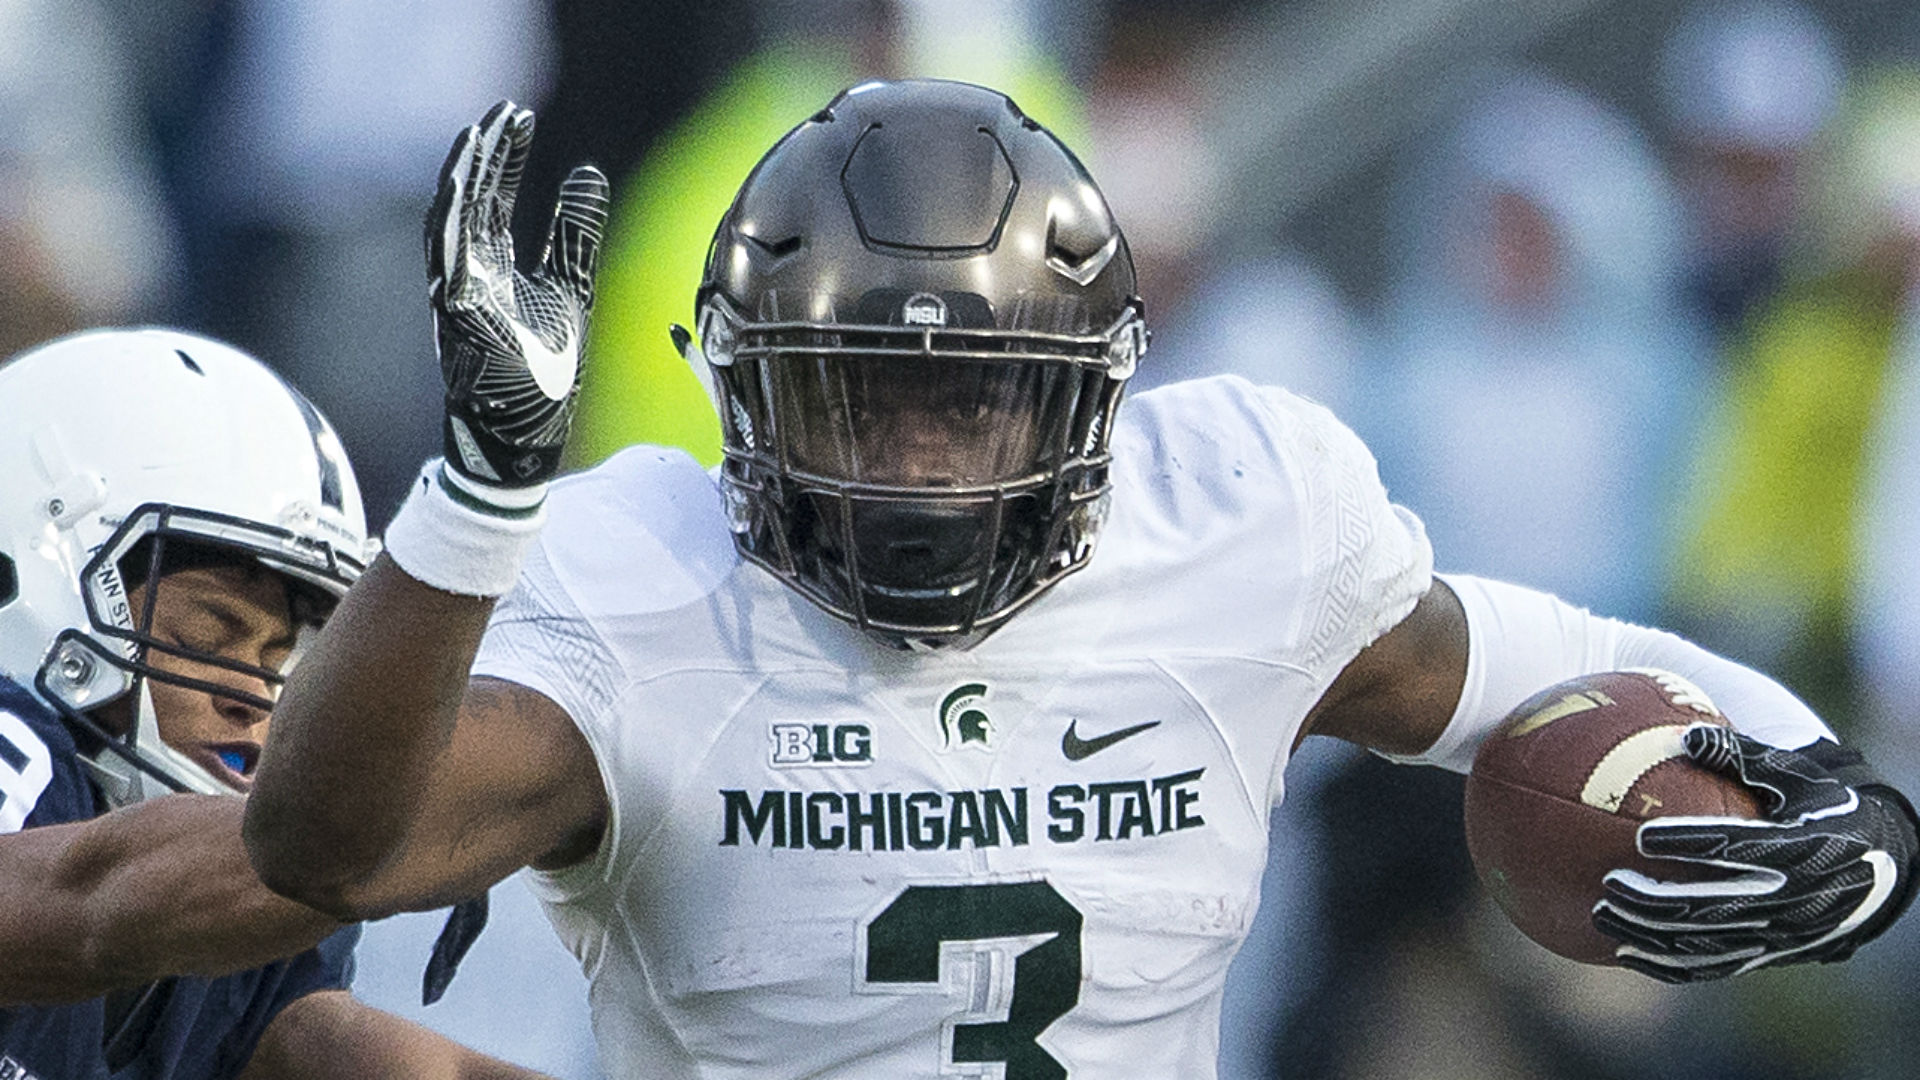 Michigan State RB LJ Scott arrested, charged with 7th driving infraction